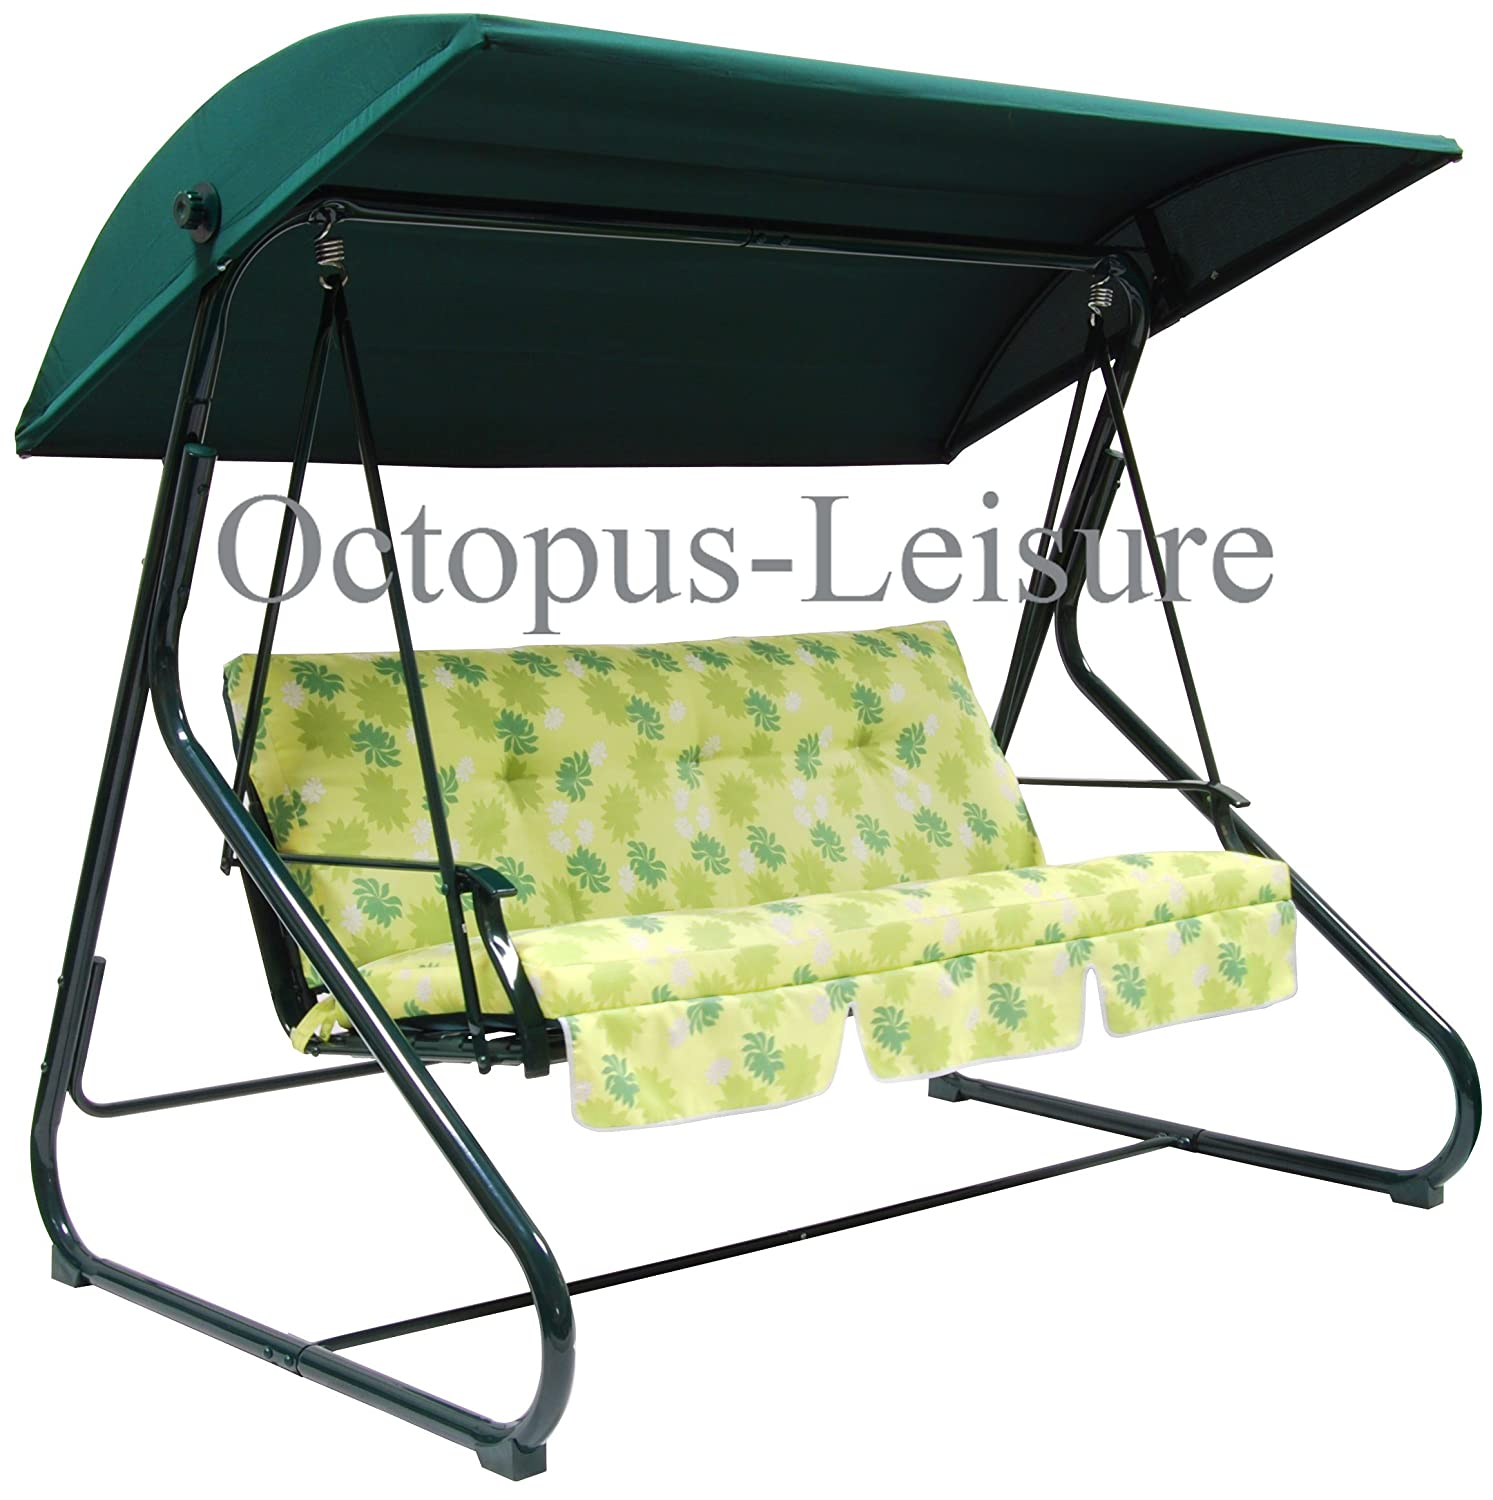 replacement b u0026q sorrento   sicily green cloth canopy  only  for swing garden hammock  amazon co uk  garden  u0026 outdoors replacement b u0026q sorrento   sicily green cloth canopy  only  for      rh   amazon co uk